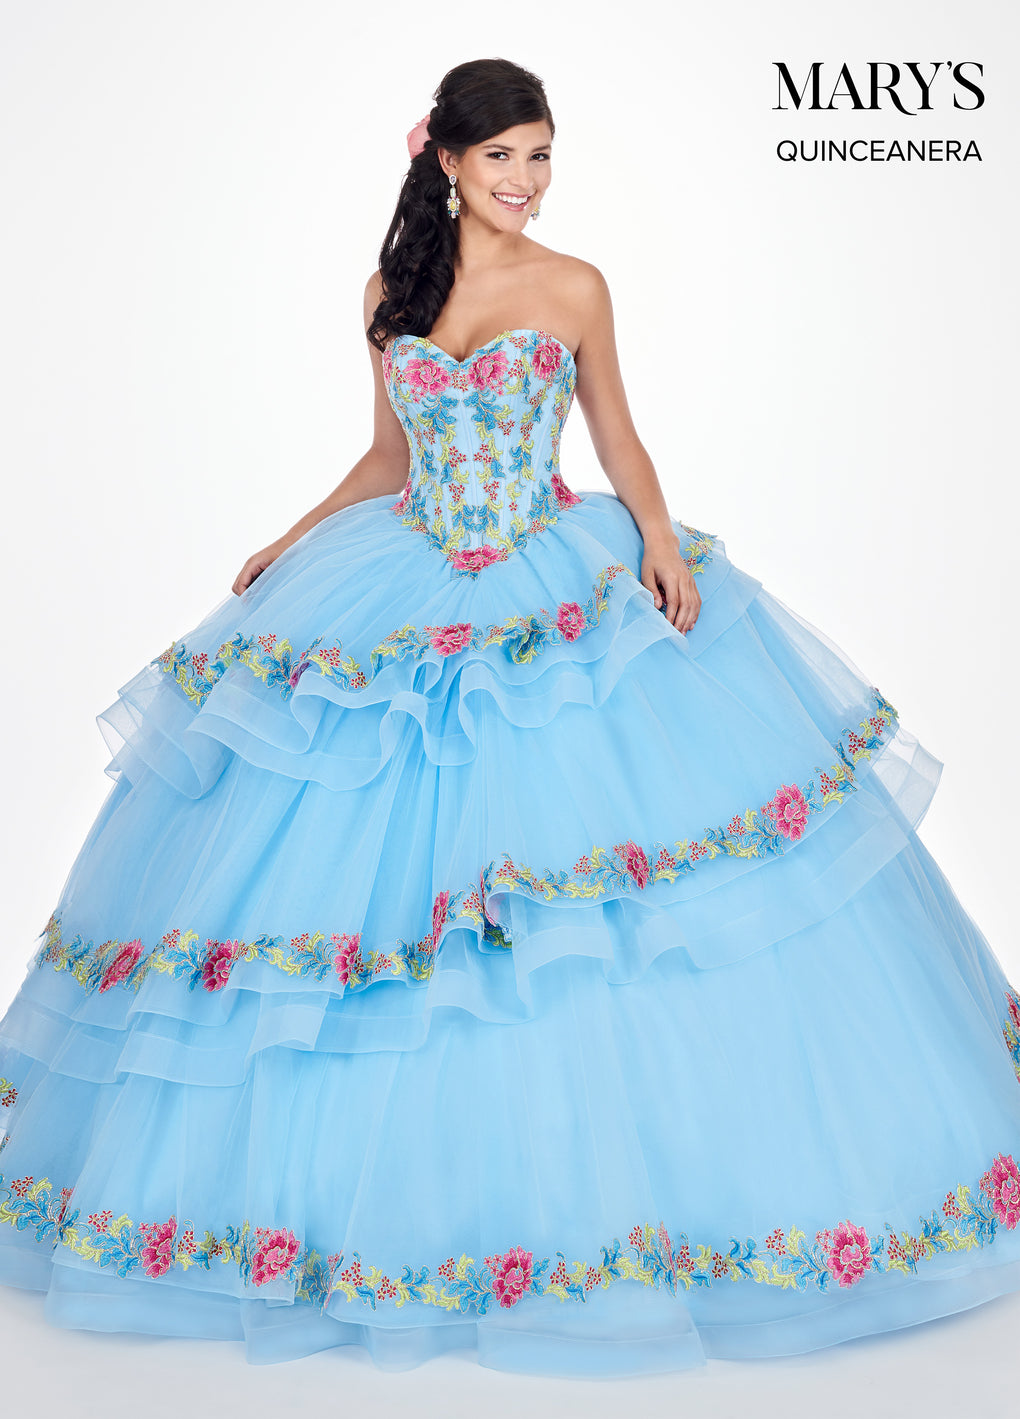 Marys Quinceanera Dresses in Sky Blue/Multi or White/Multi Color